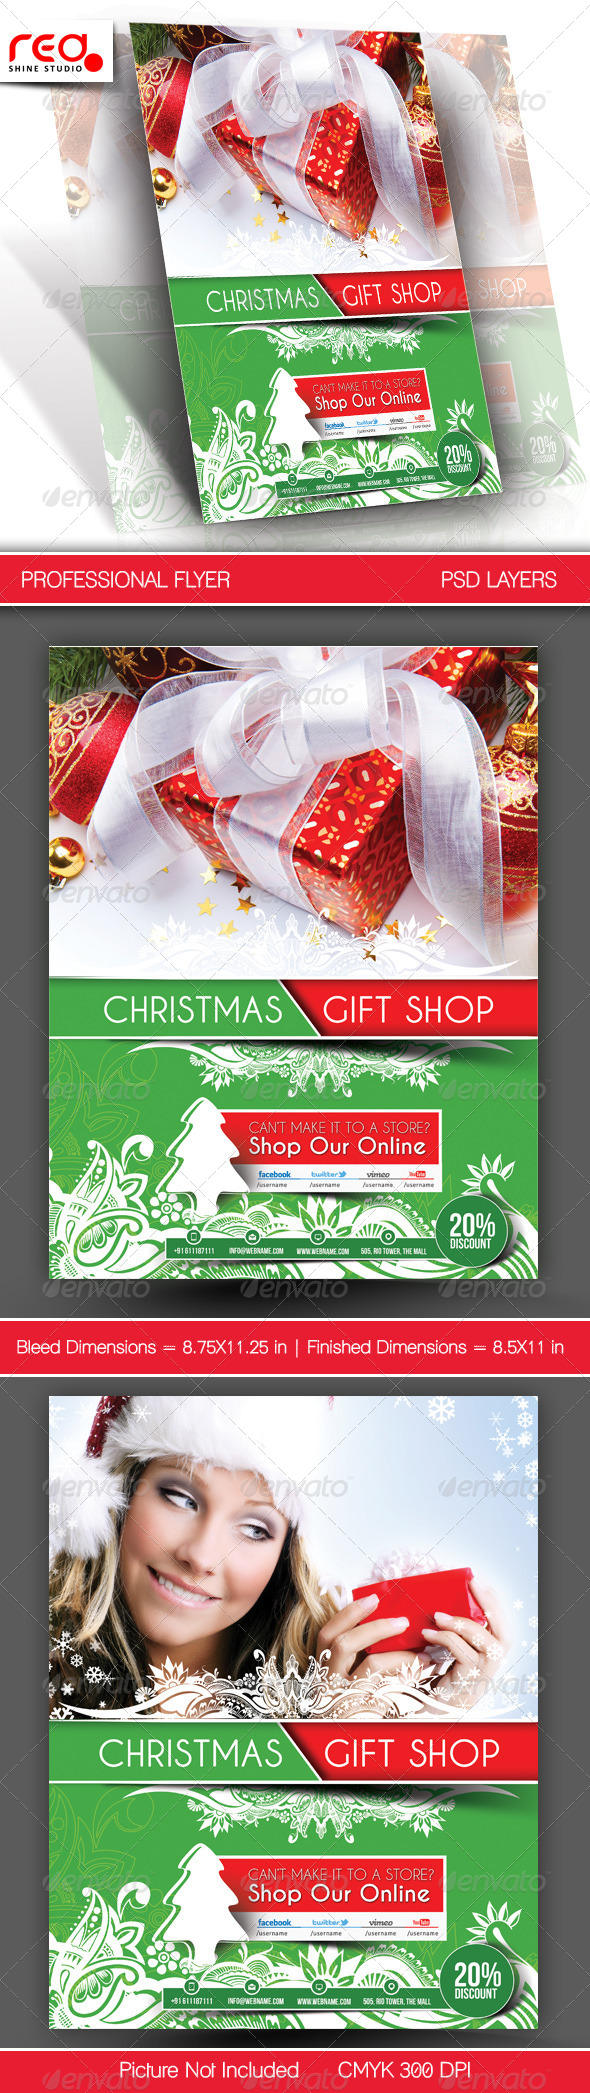 Gift Shop Flyer Poster Template - 3 - Holidays Events